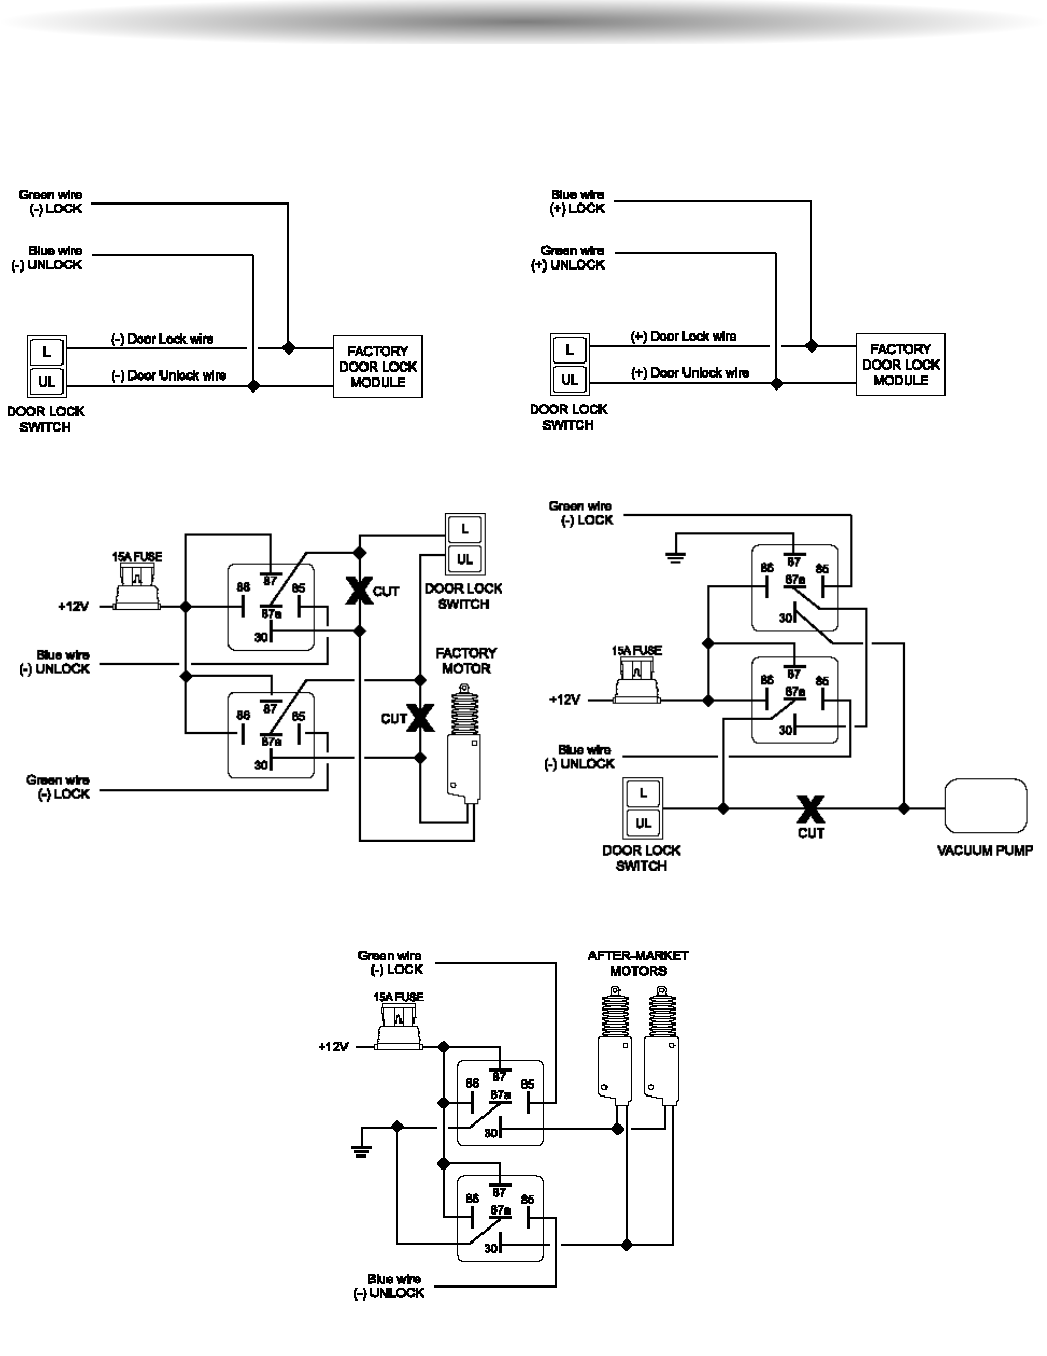 Scytek car wiring diagram wiring diagrams schematics scytek car alarm wiring diagram wiring diagram dual car amp wiring diagram car stereo wiring diagram page 17 of scytek electronic automobile alarm a10 user asfbconference2016 Gallery